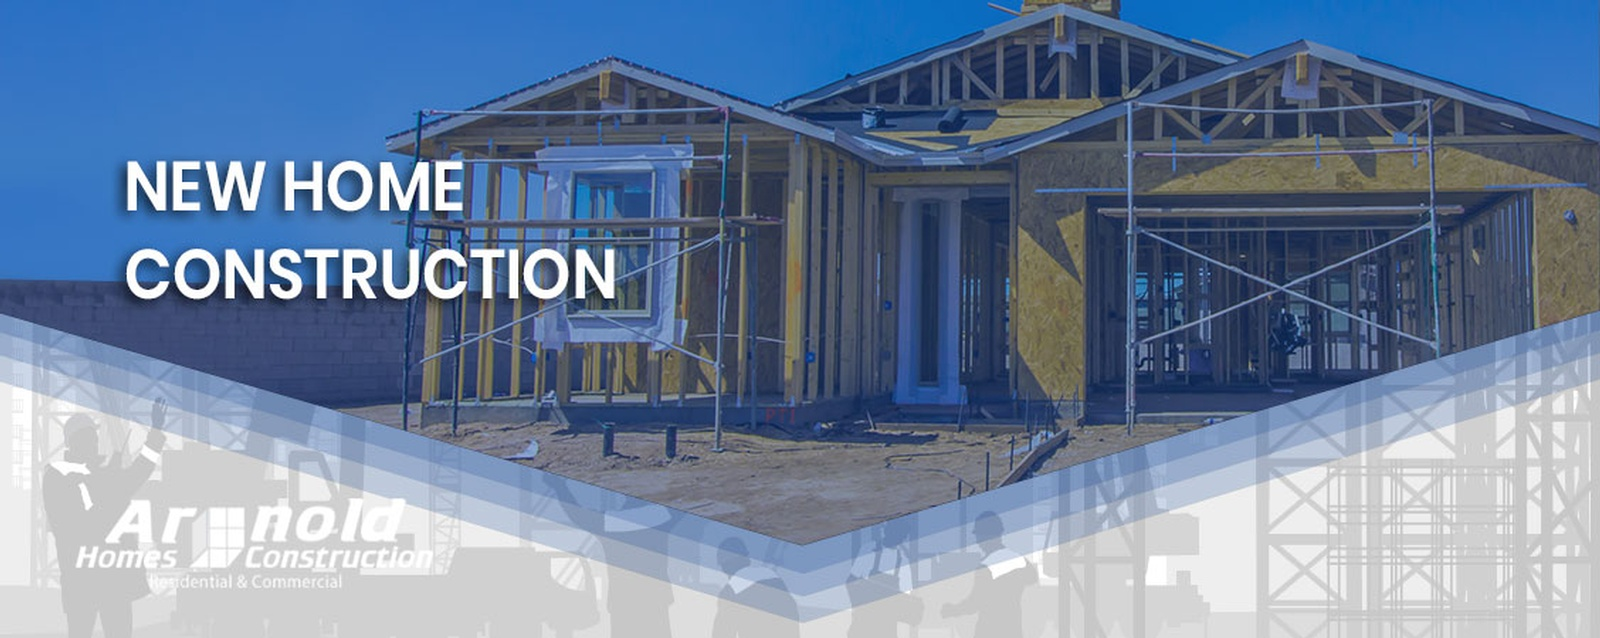 New Home Construction Services by Toronto General Contractor at Arnold Homes Ltd